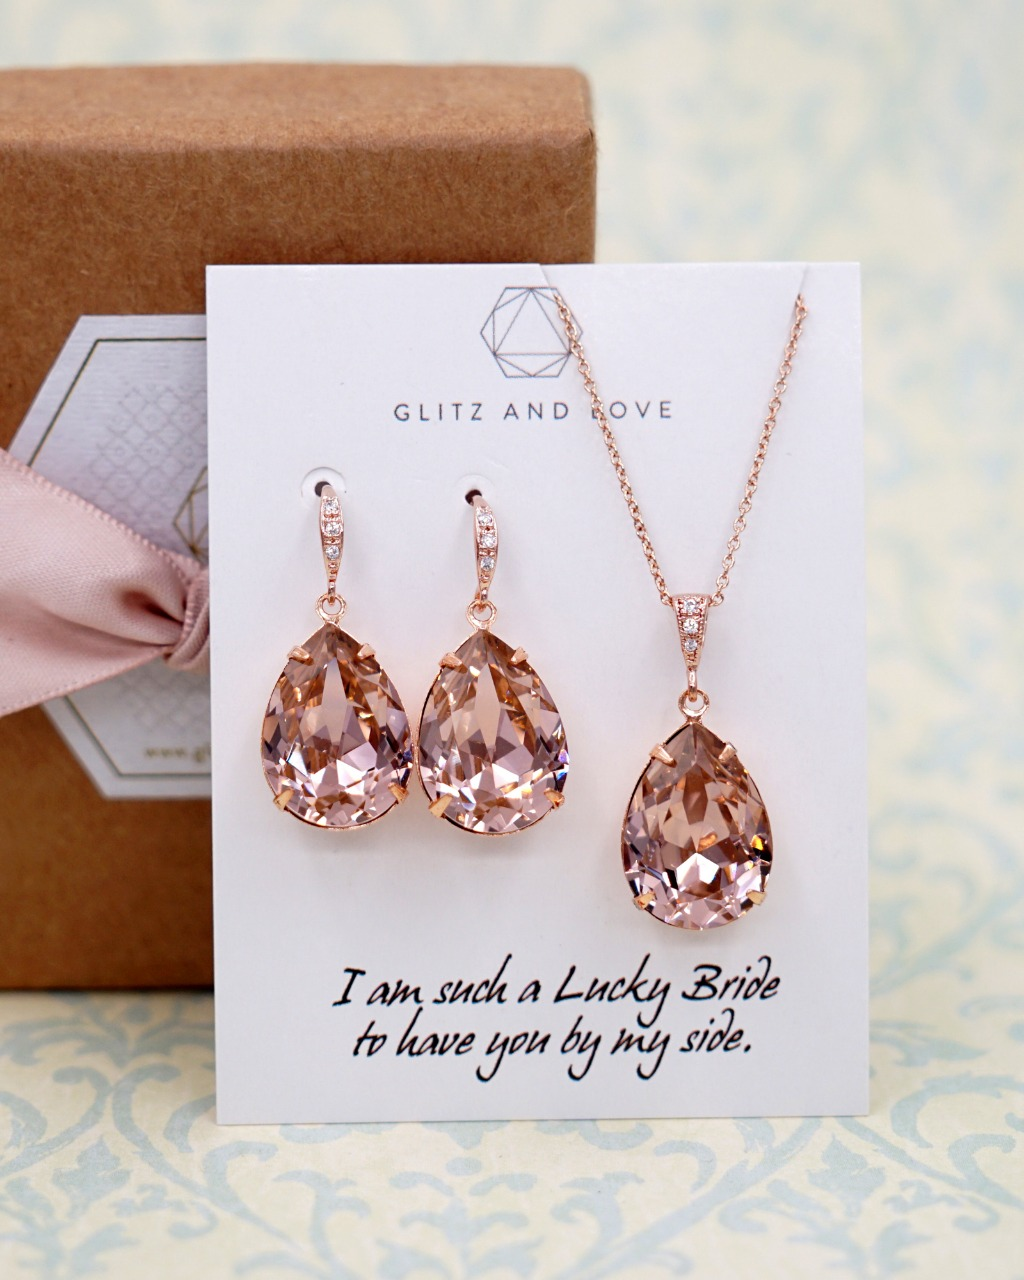 Rose Gold Swarovski Crystal Earrings and Necklace Jewelry set, weddings, brides, bridesmaids, bridal shower gifts, personalised message